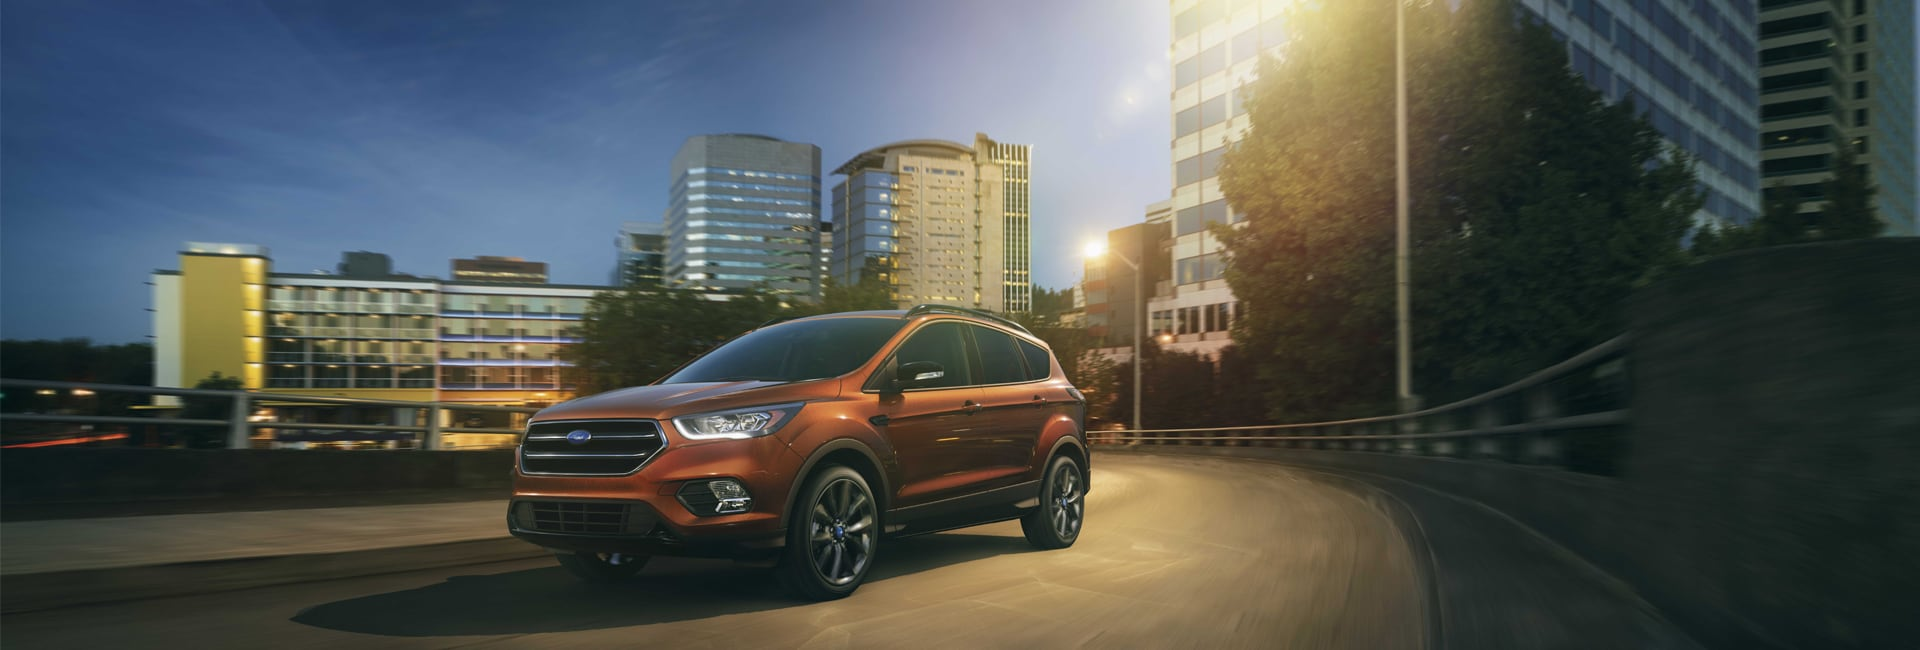 2017 Ford Escape Exterior Features